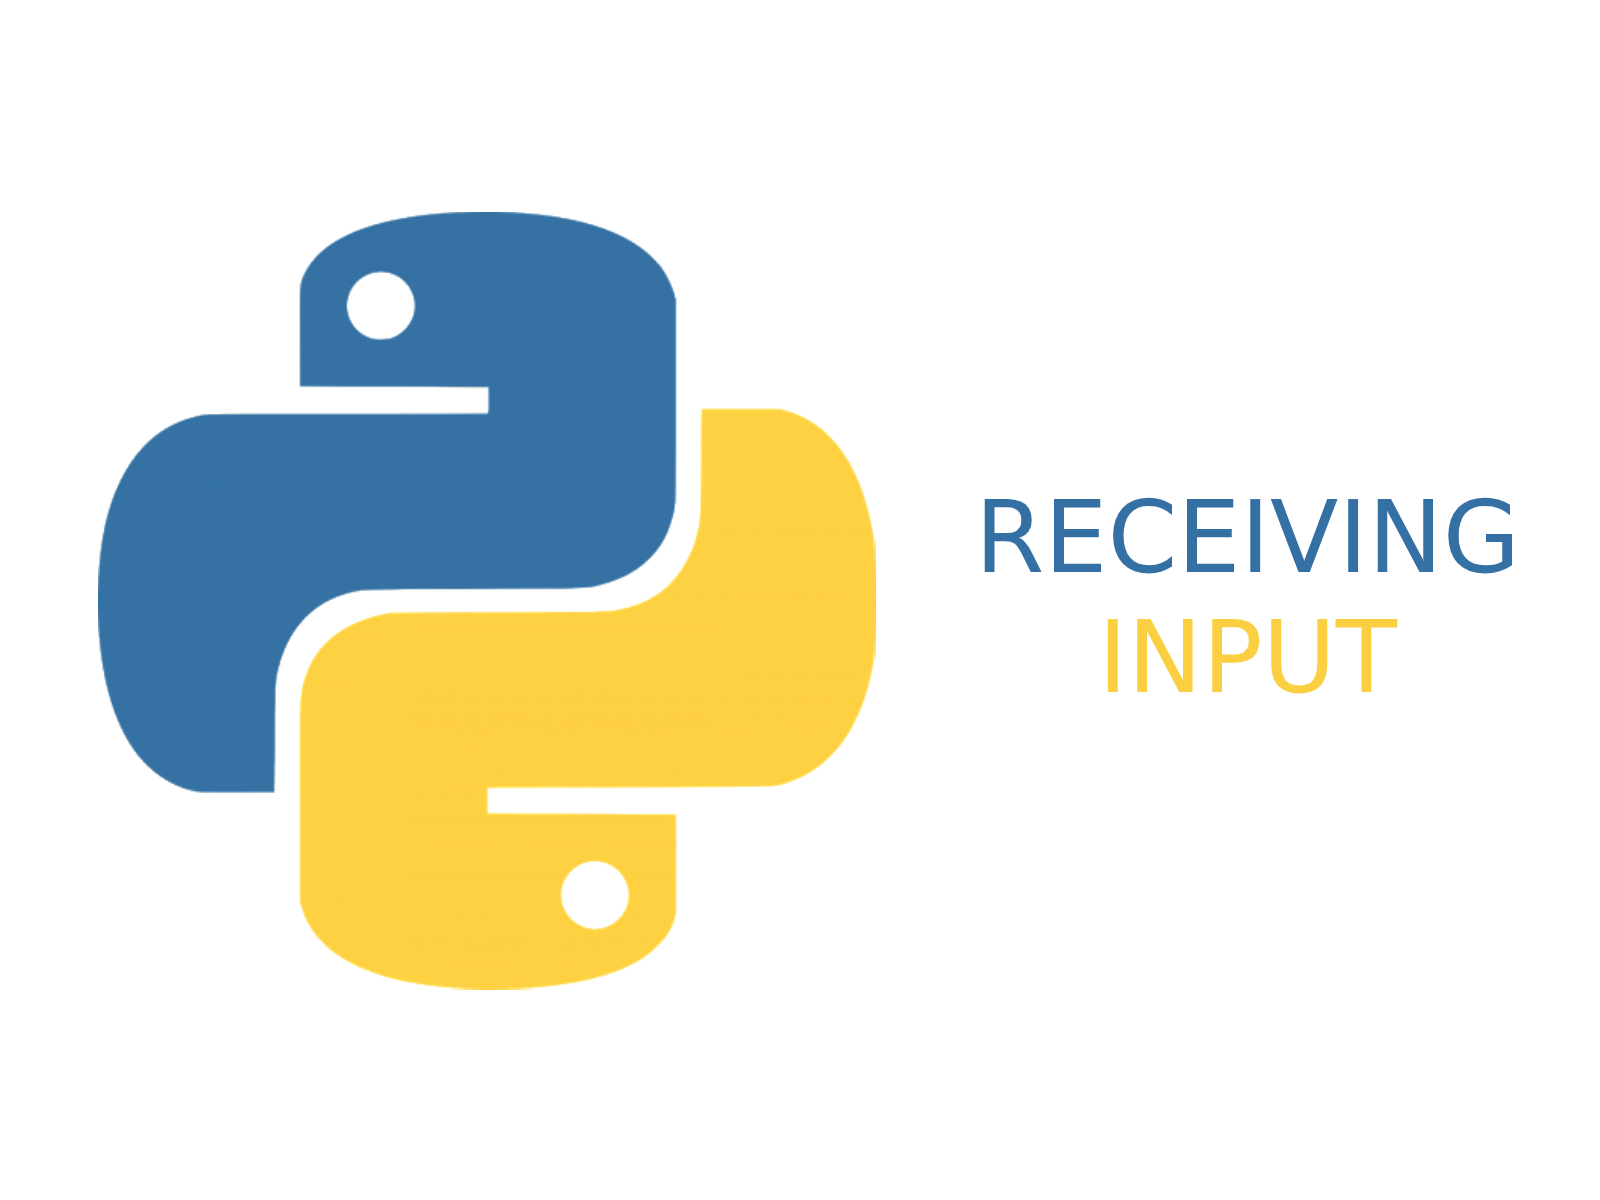 Receiving input in python